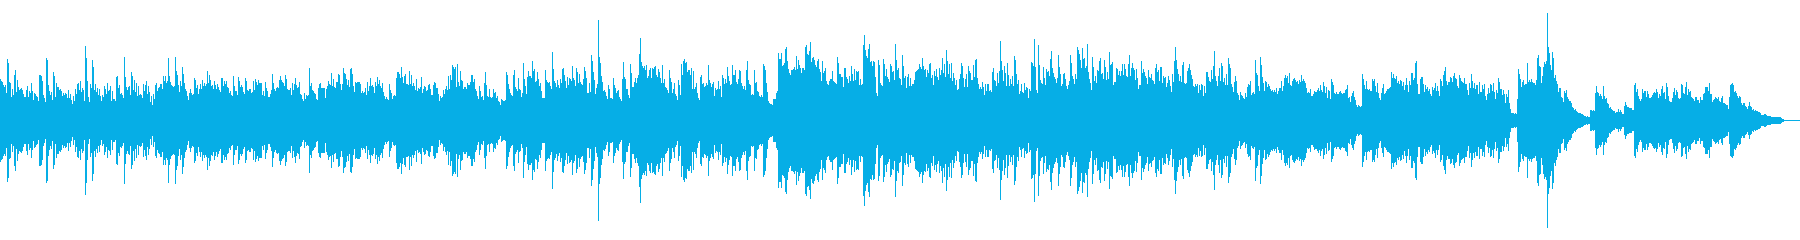 Bright and refreshing romance song (piano solo)'s reproduced waveform